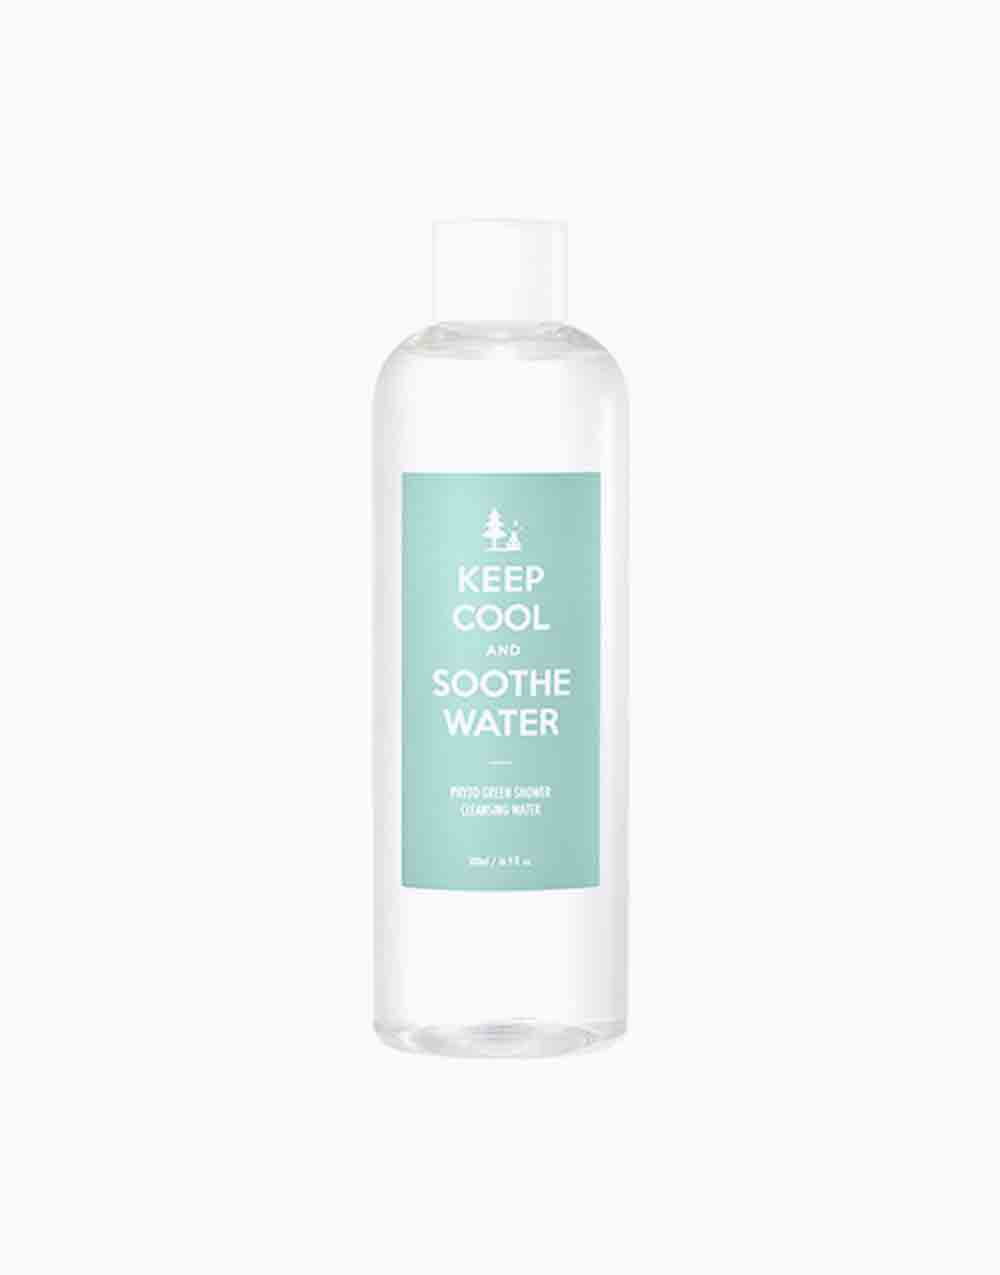 Soothe Pytho Green Shower Cleansing Water (500ml) by KEEP COOL